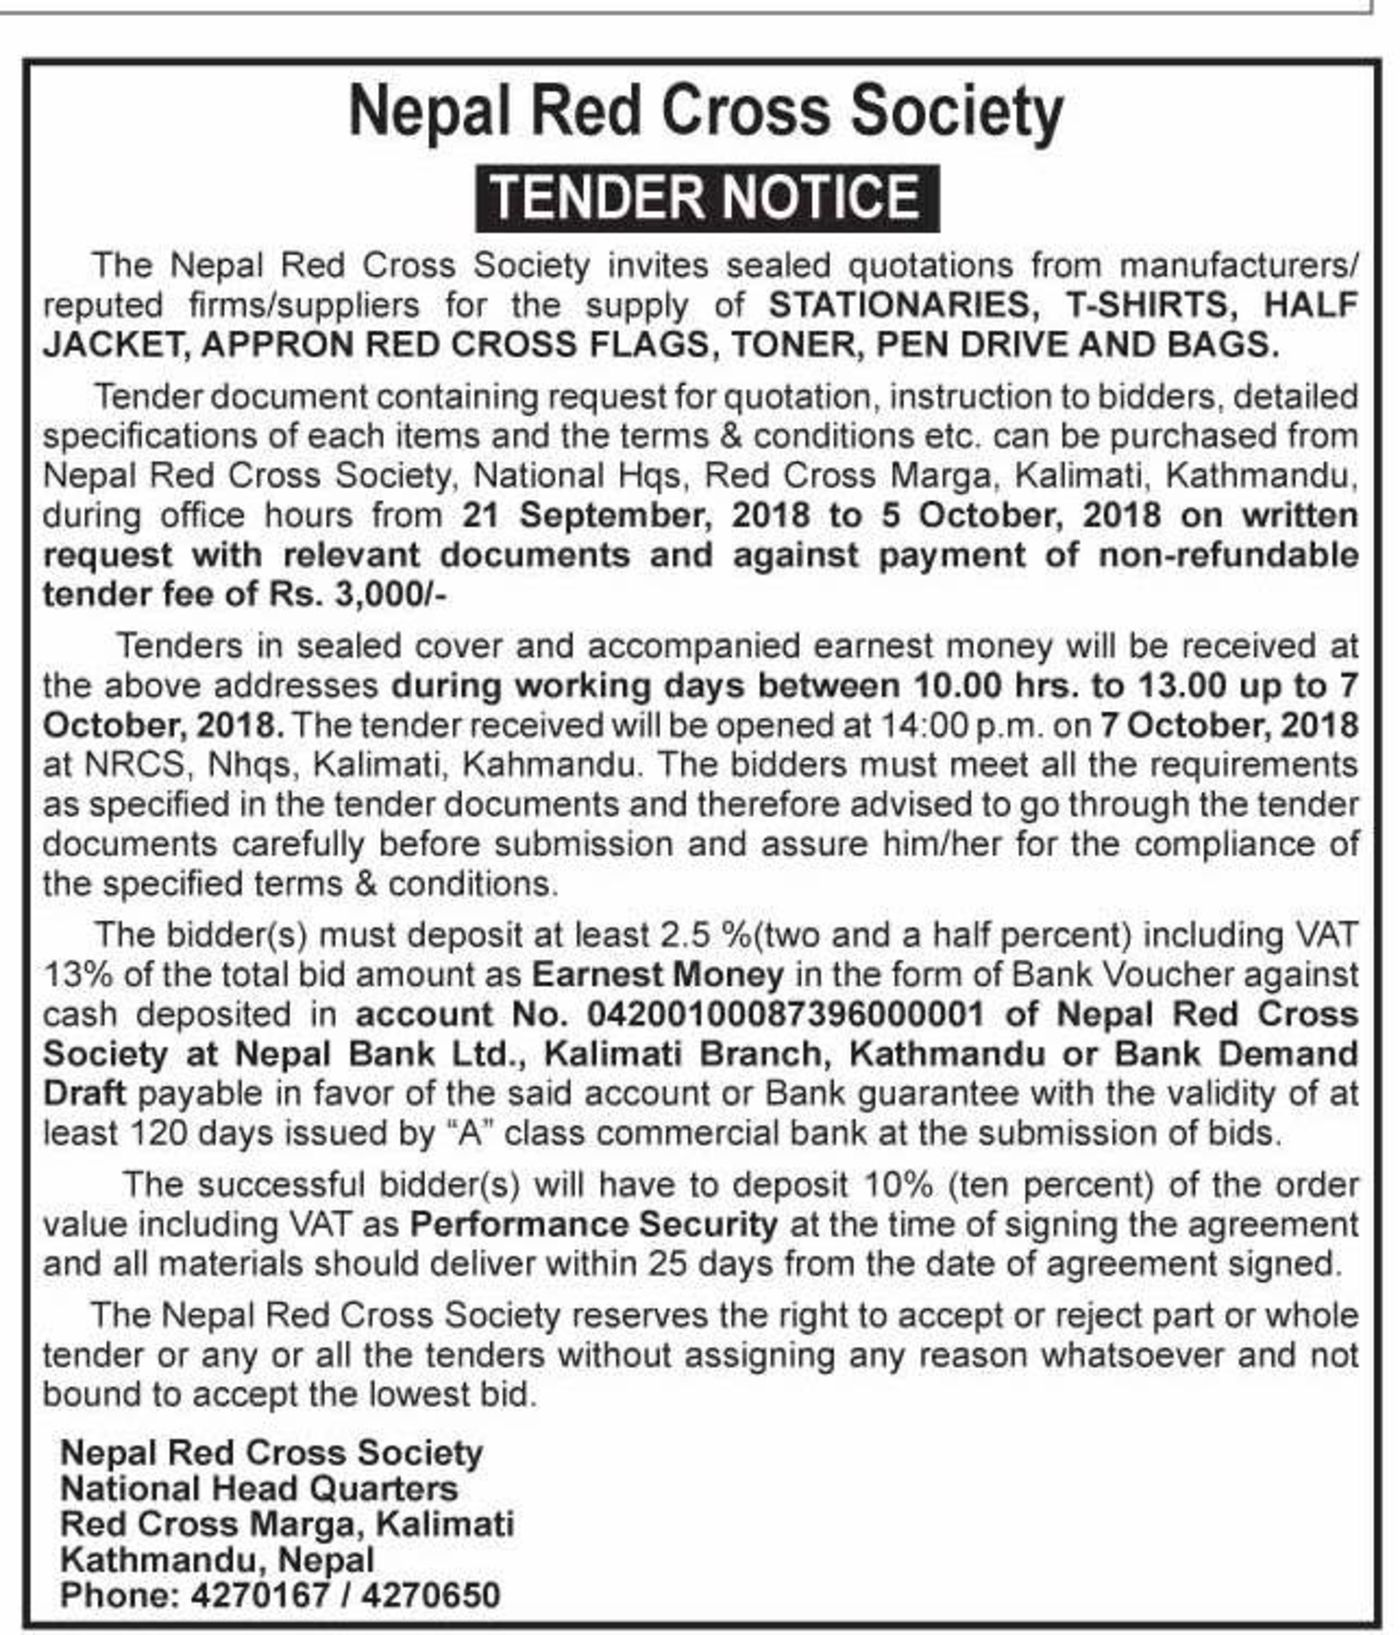 Bids and Tenders Nepal - Tender - Supply of Stationery, T-Shirts